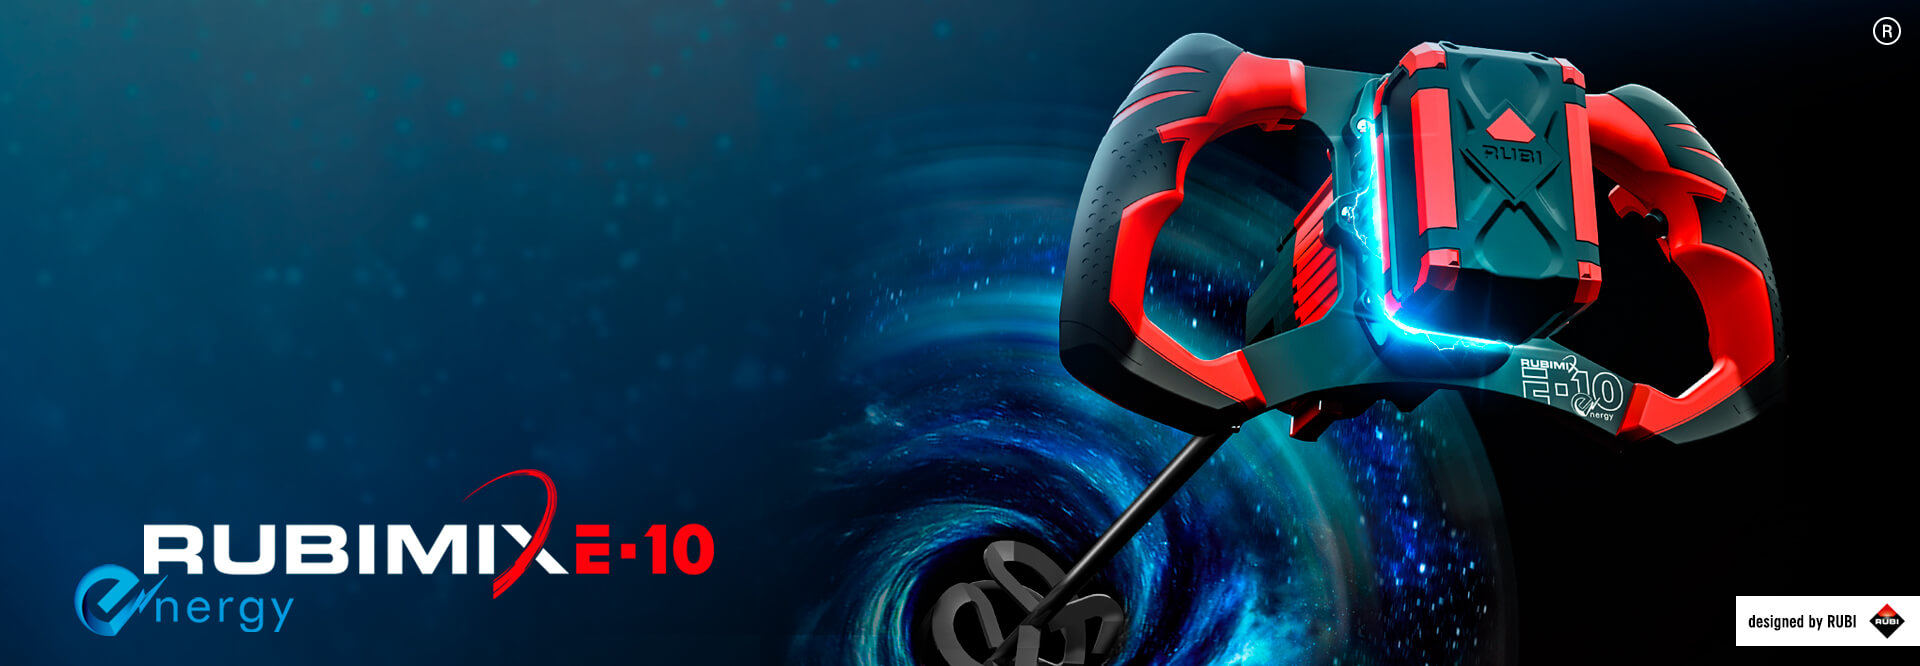 RUBIMIX E-10 Energy,  a cordless mixer that combines functionality,  power and lightness